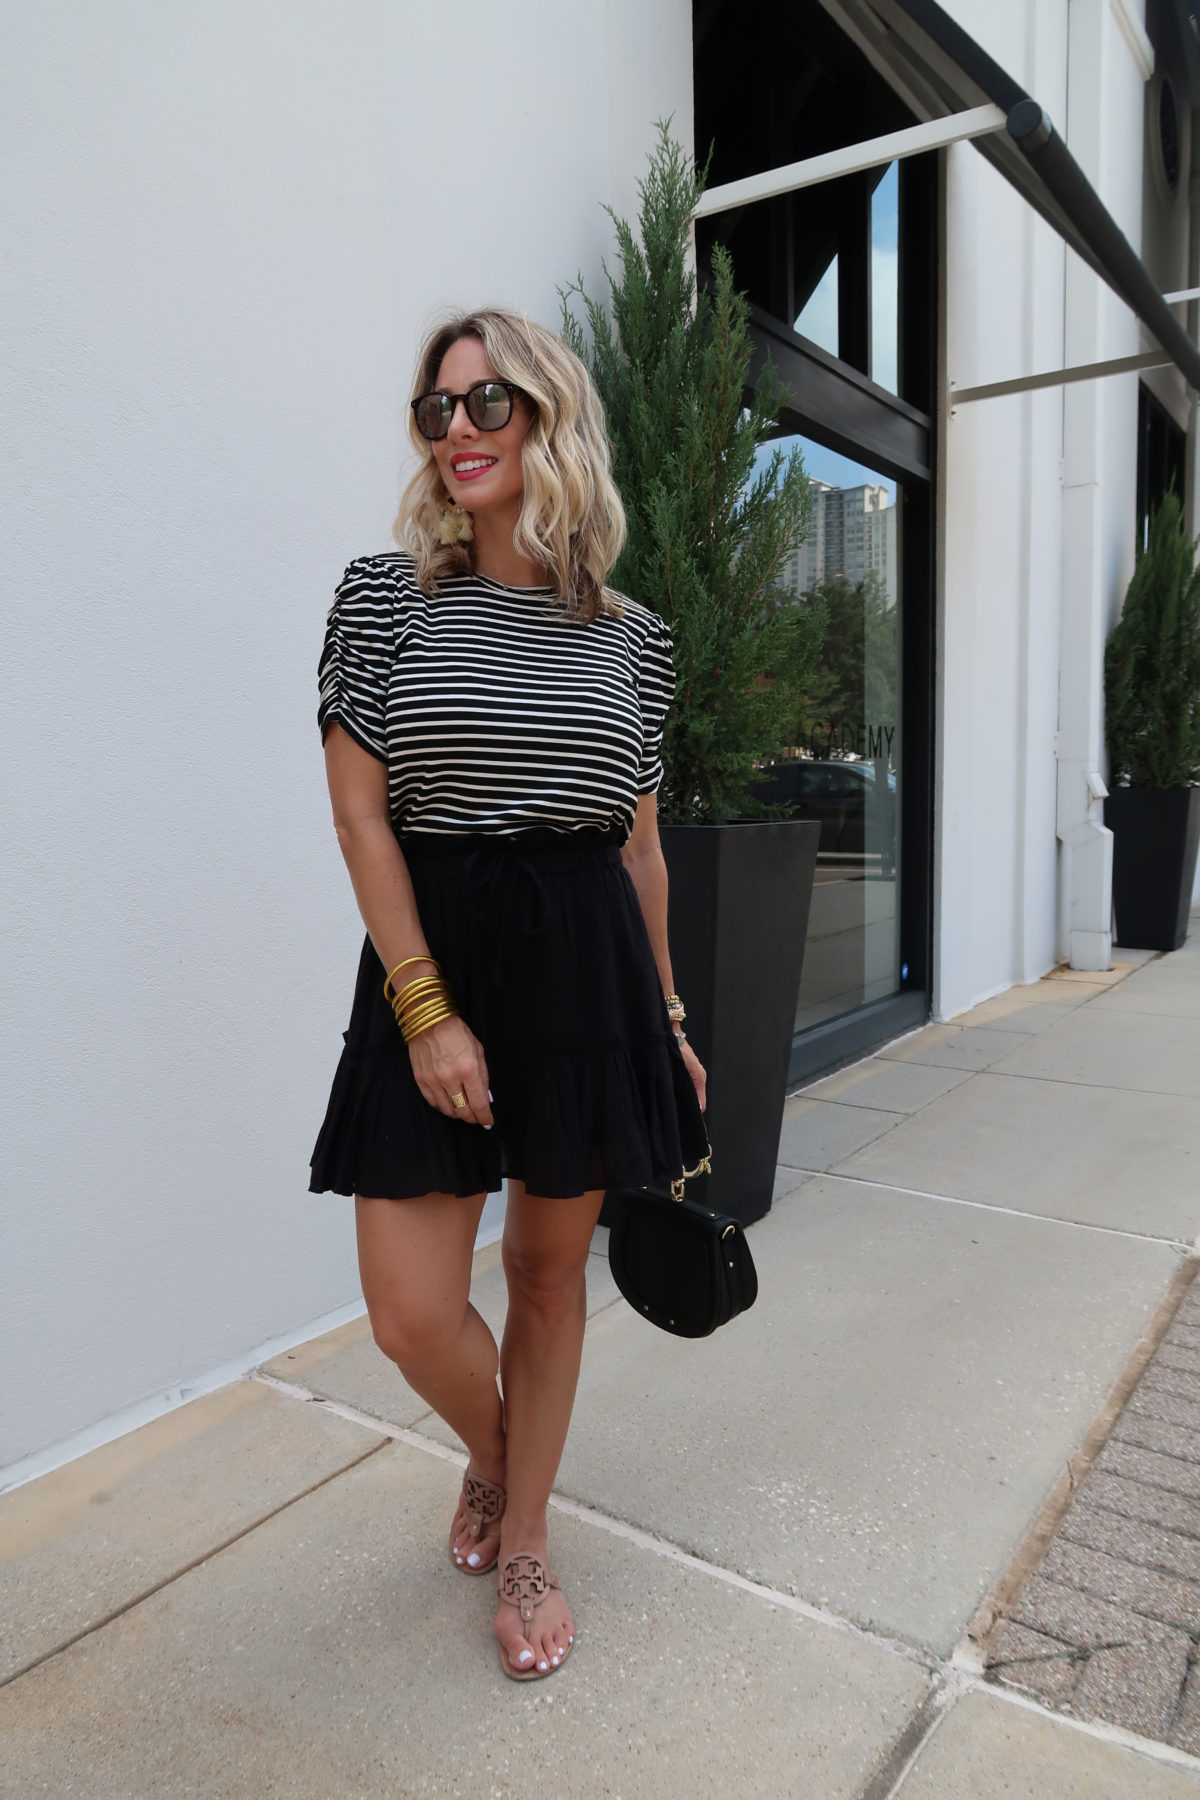 New Summer Styles, Gibson and Nordstrom, Stripe Top, Black Tiered Skirt, Miller Sandals, Ring Bag